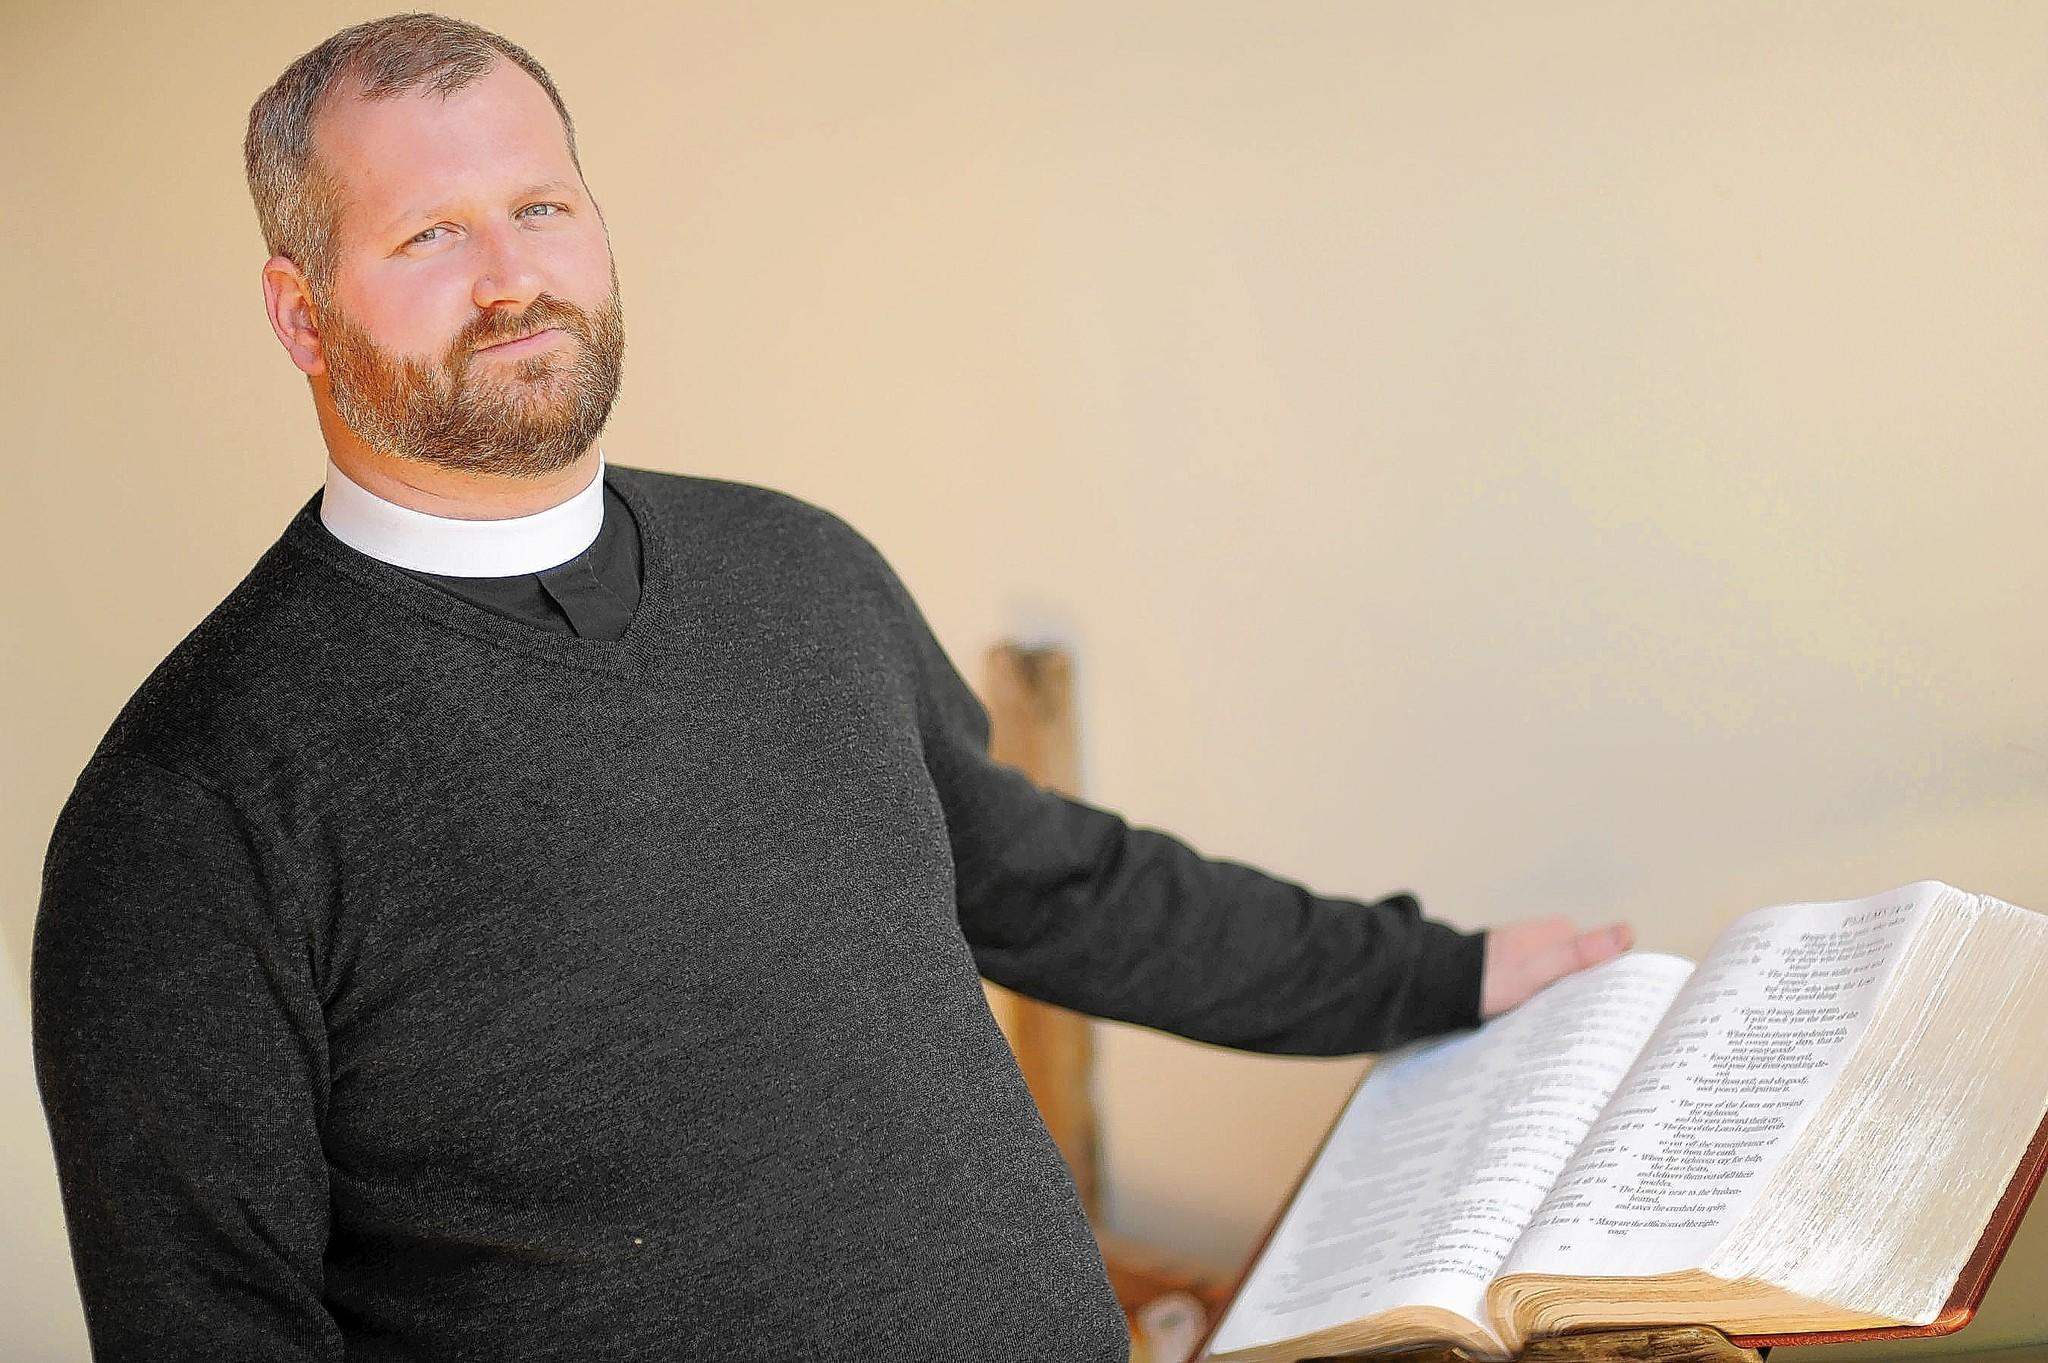 Rev. Kristofer Lindh-Payne of Epiphany Episcopal Church in Timonium aims to connect with people outside church walls through programs like Ashes to Go and other outreach efforts.